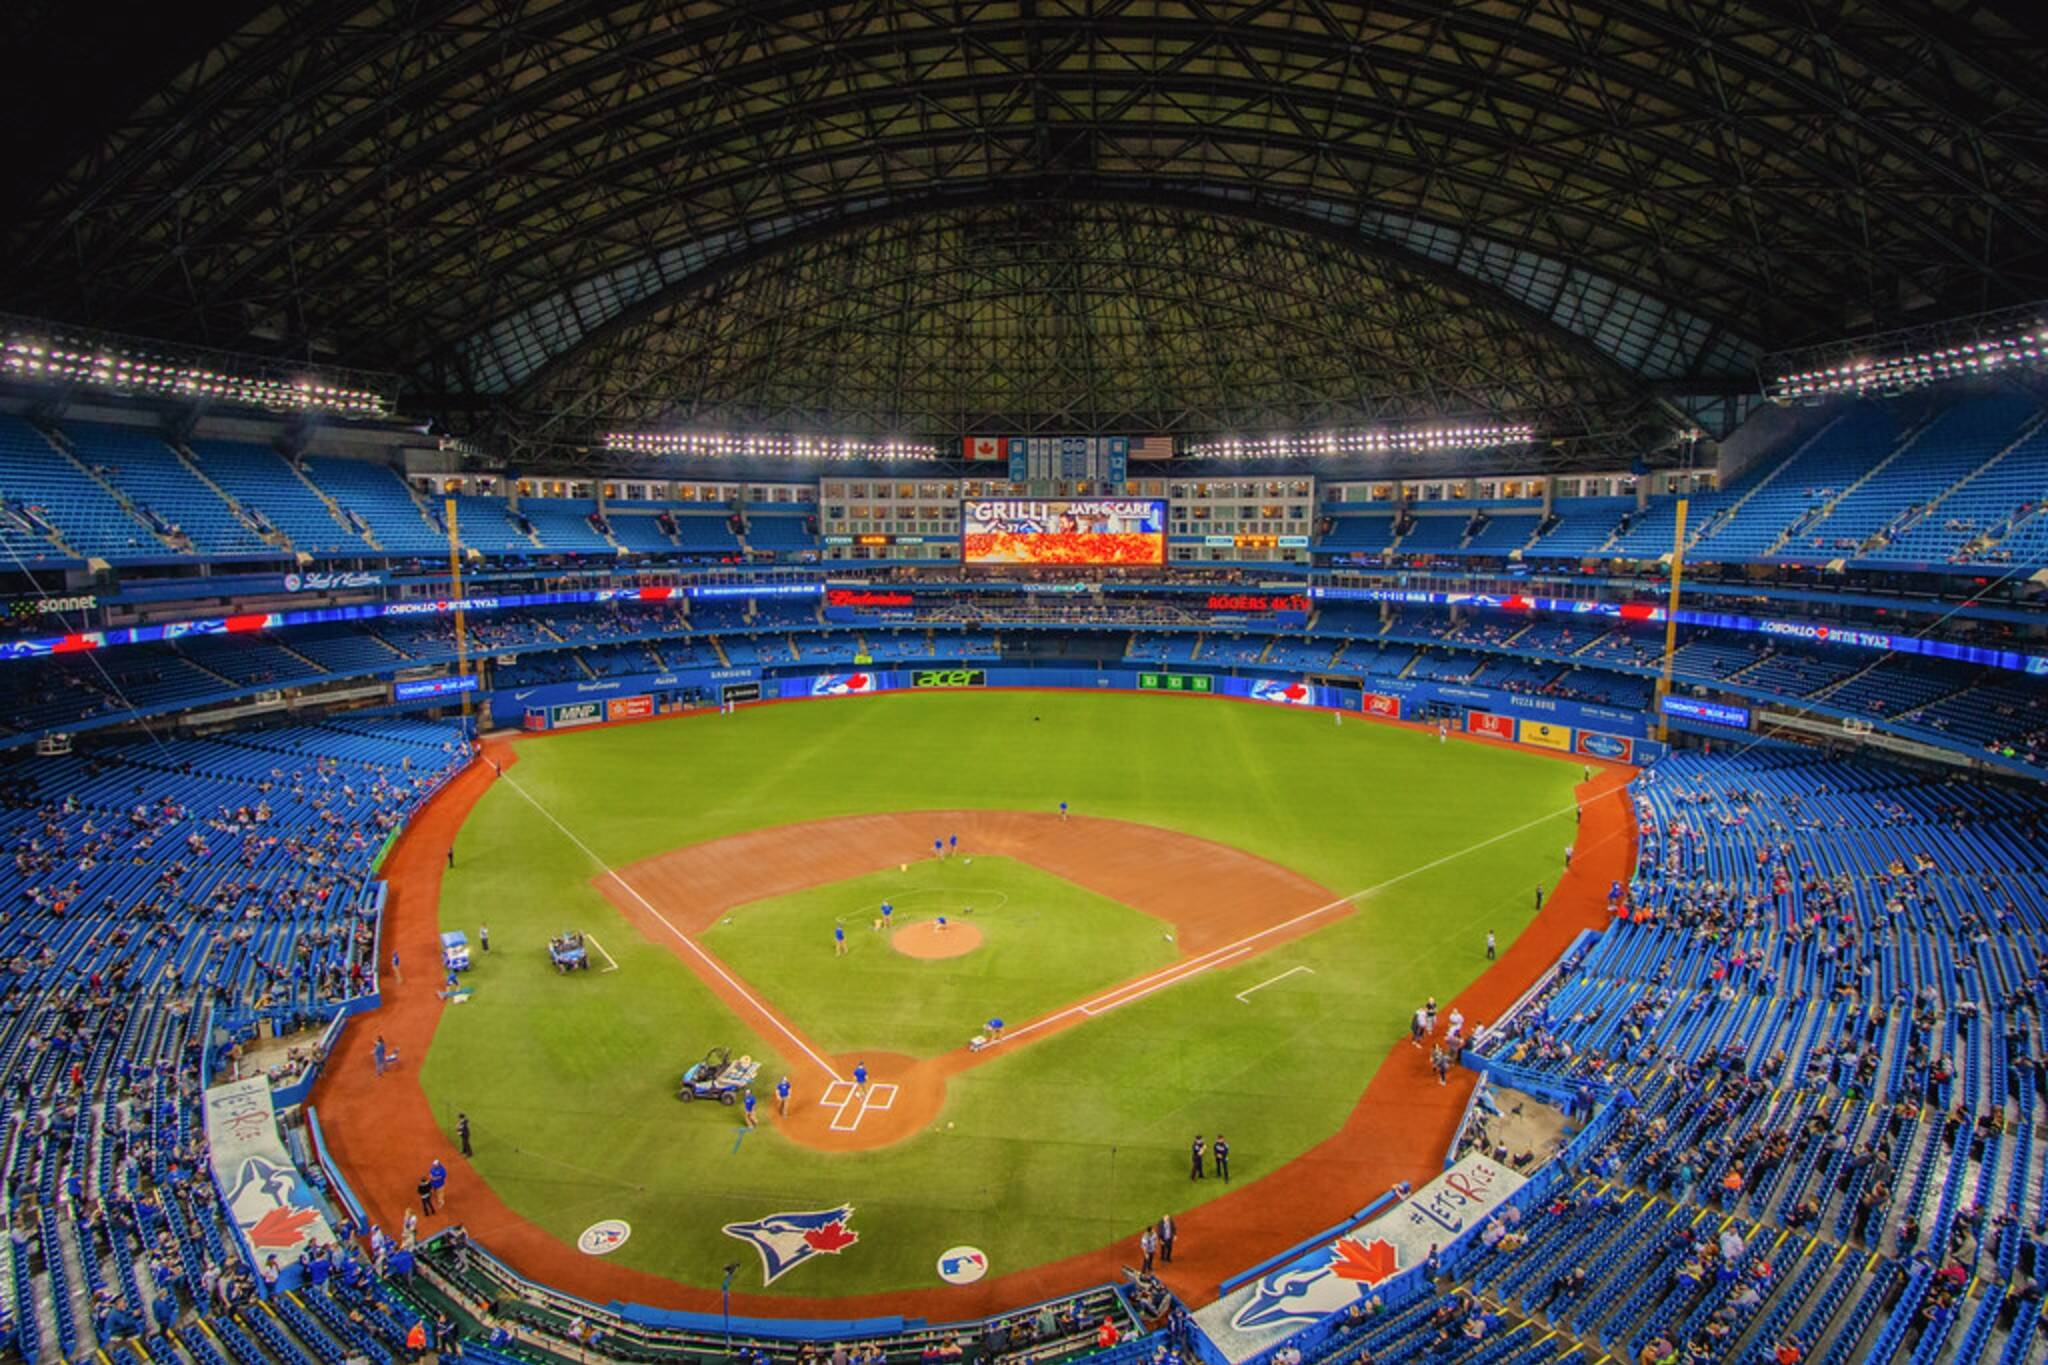 blue jays protective netting